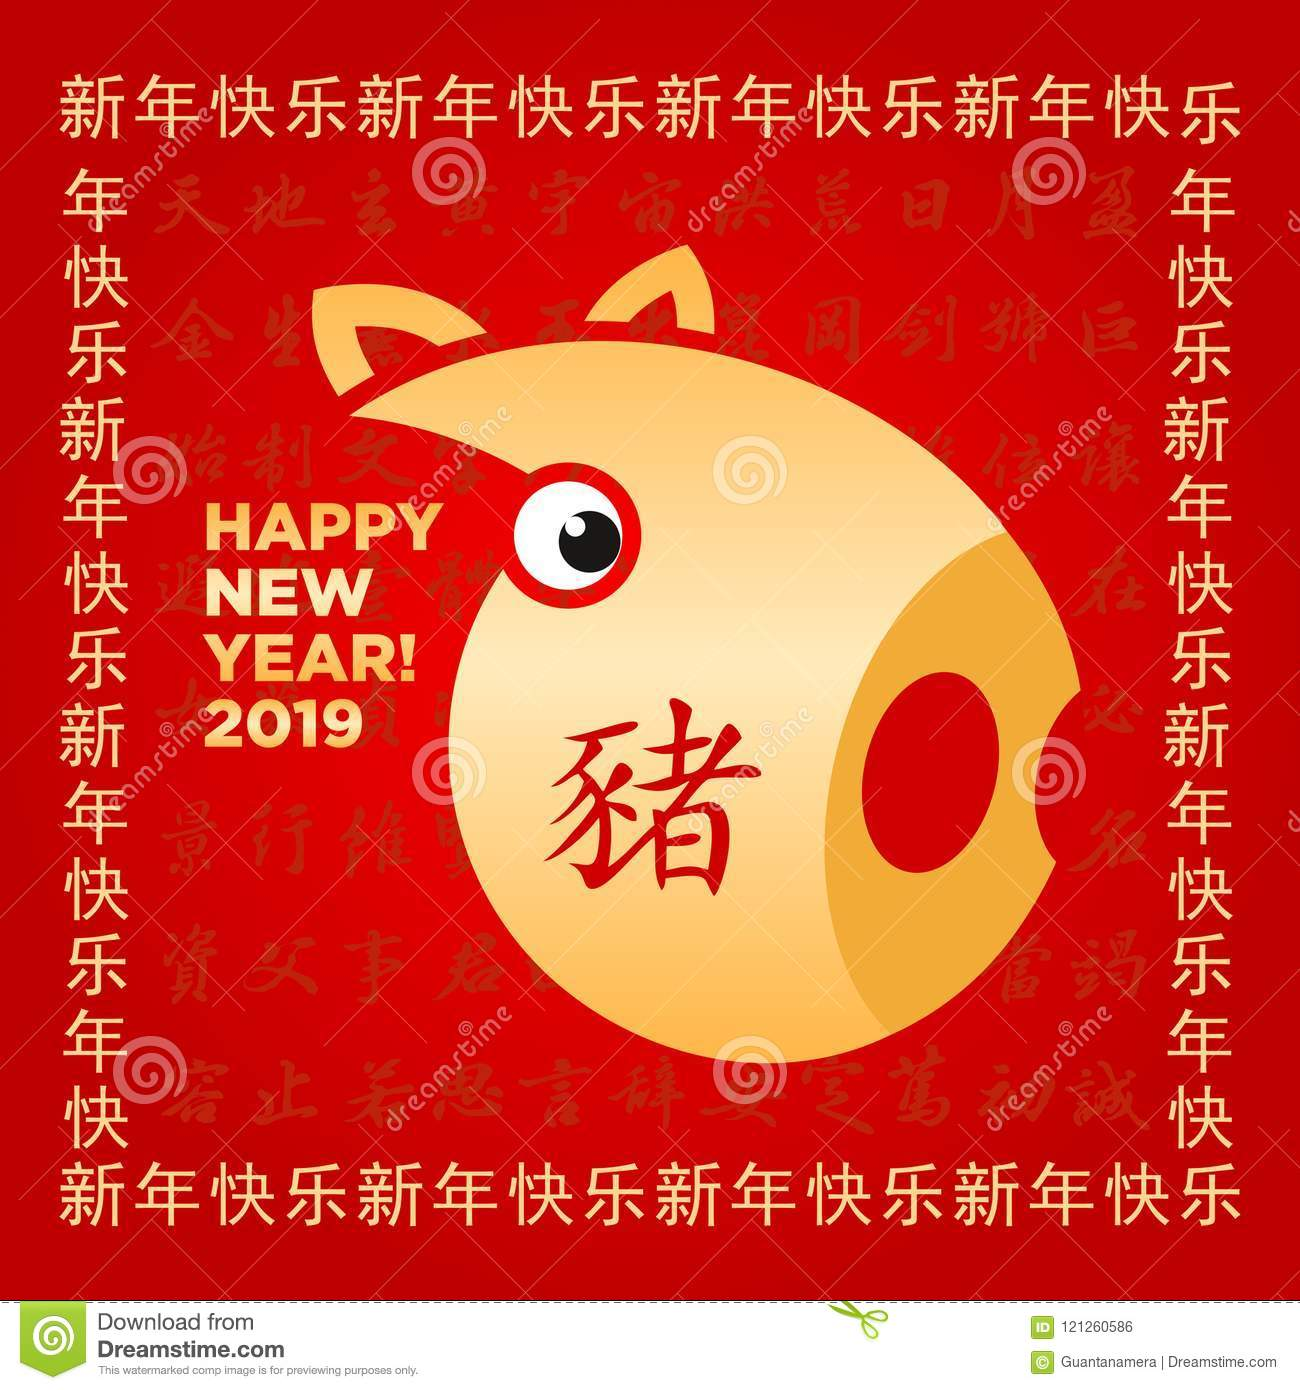 2019 happy new year chinese pig zodiac minimal modern sign card and banner background template